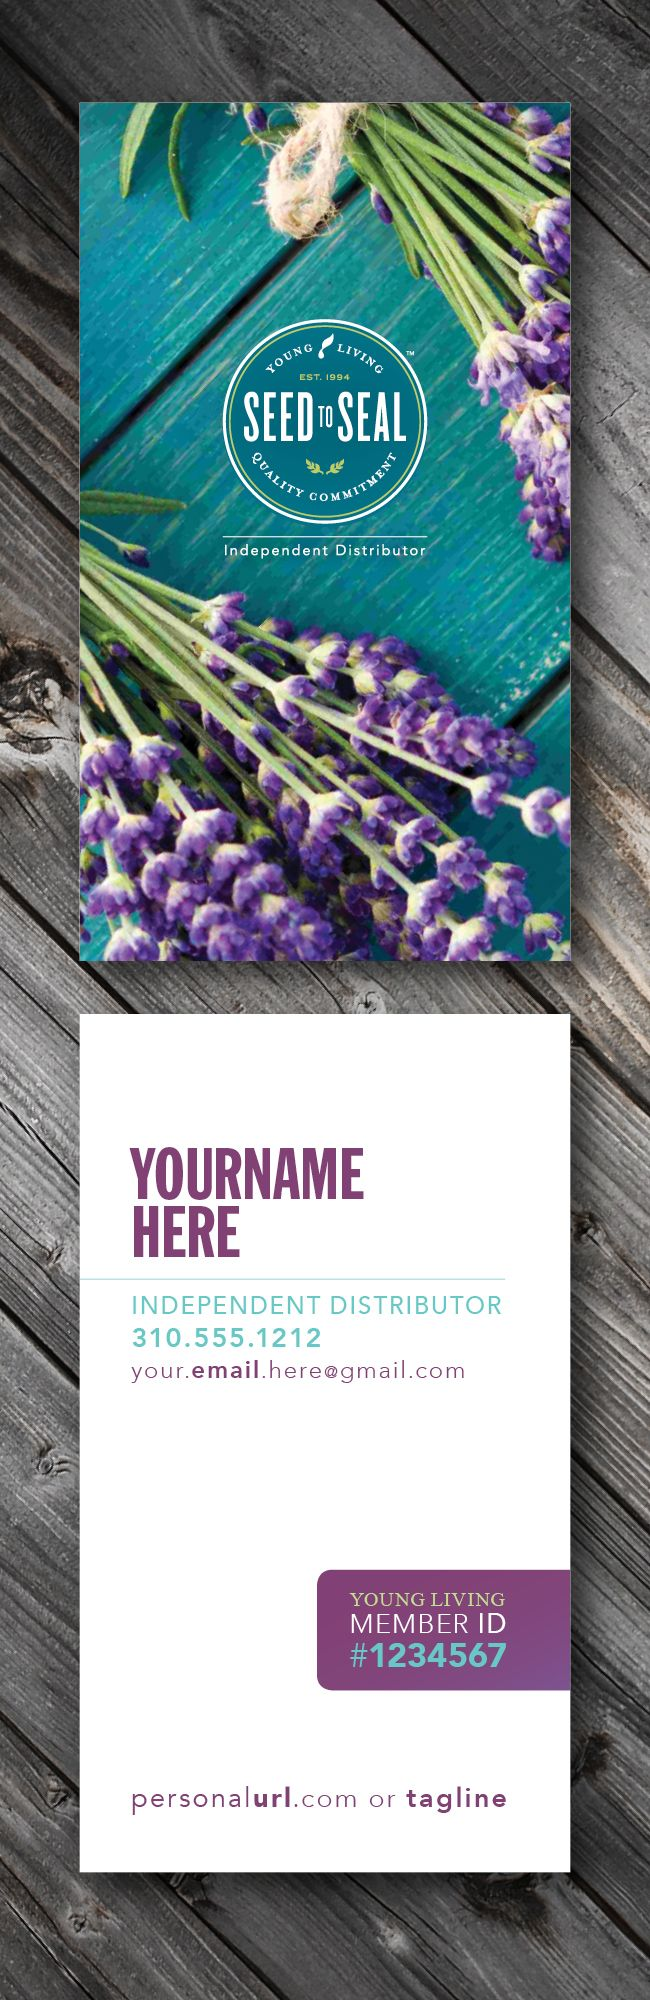 Best 25+ Personalized business cards ideas on Pinterest | Cheese ...